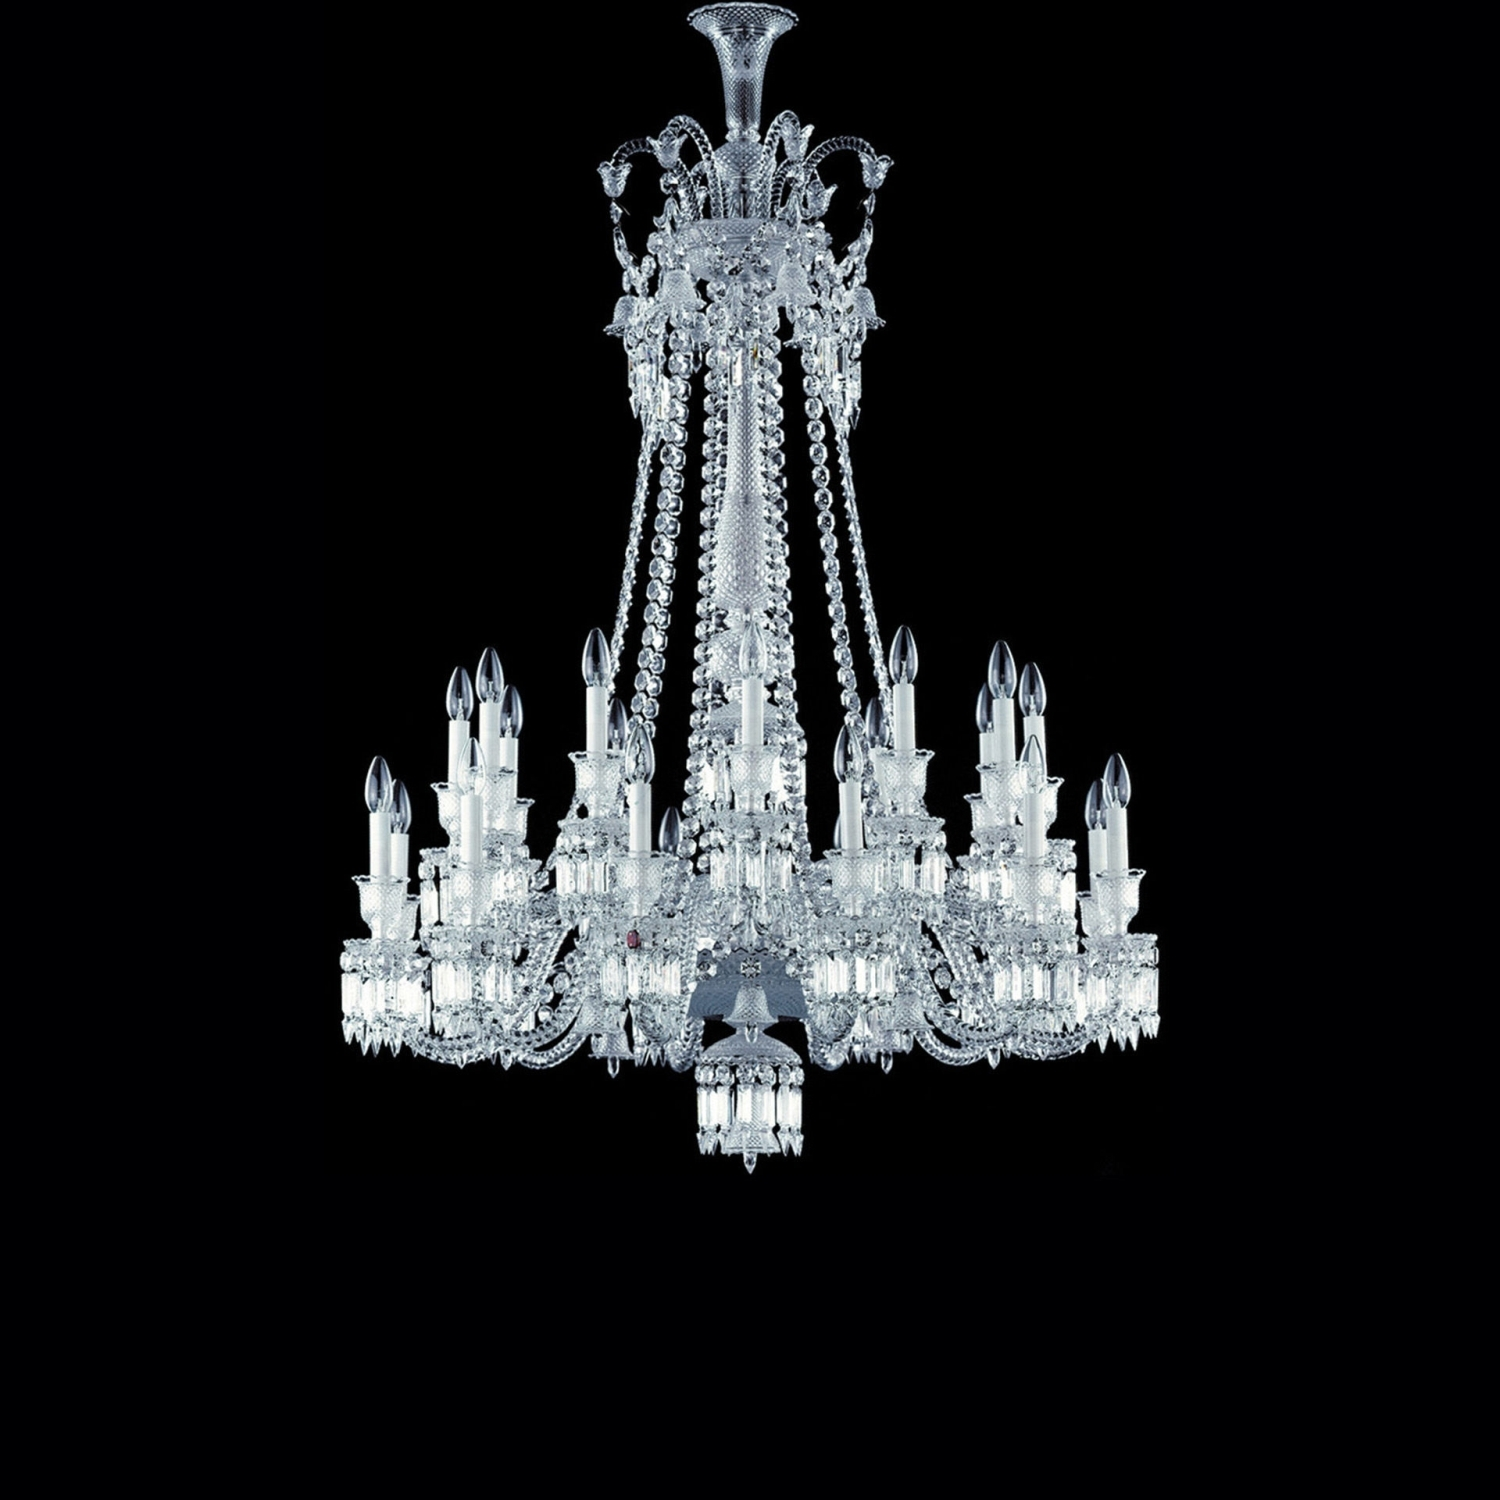 Chandelier Clear 24l Baccarat Zenith 2606575 Within Short Chandeliers (Image 9 of 25)